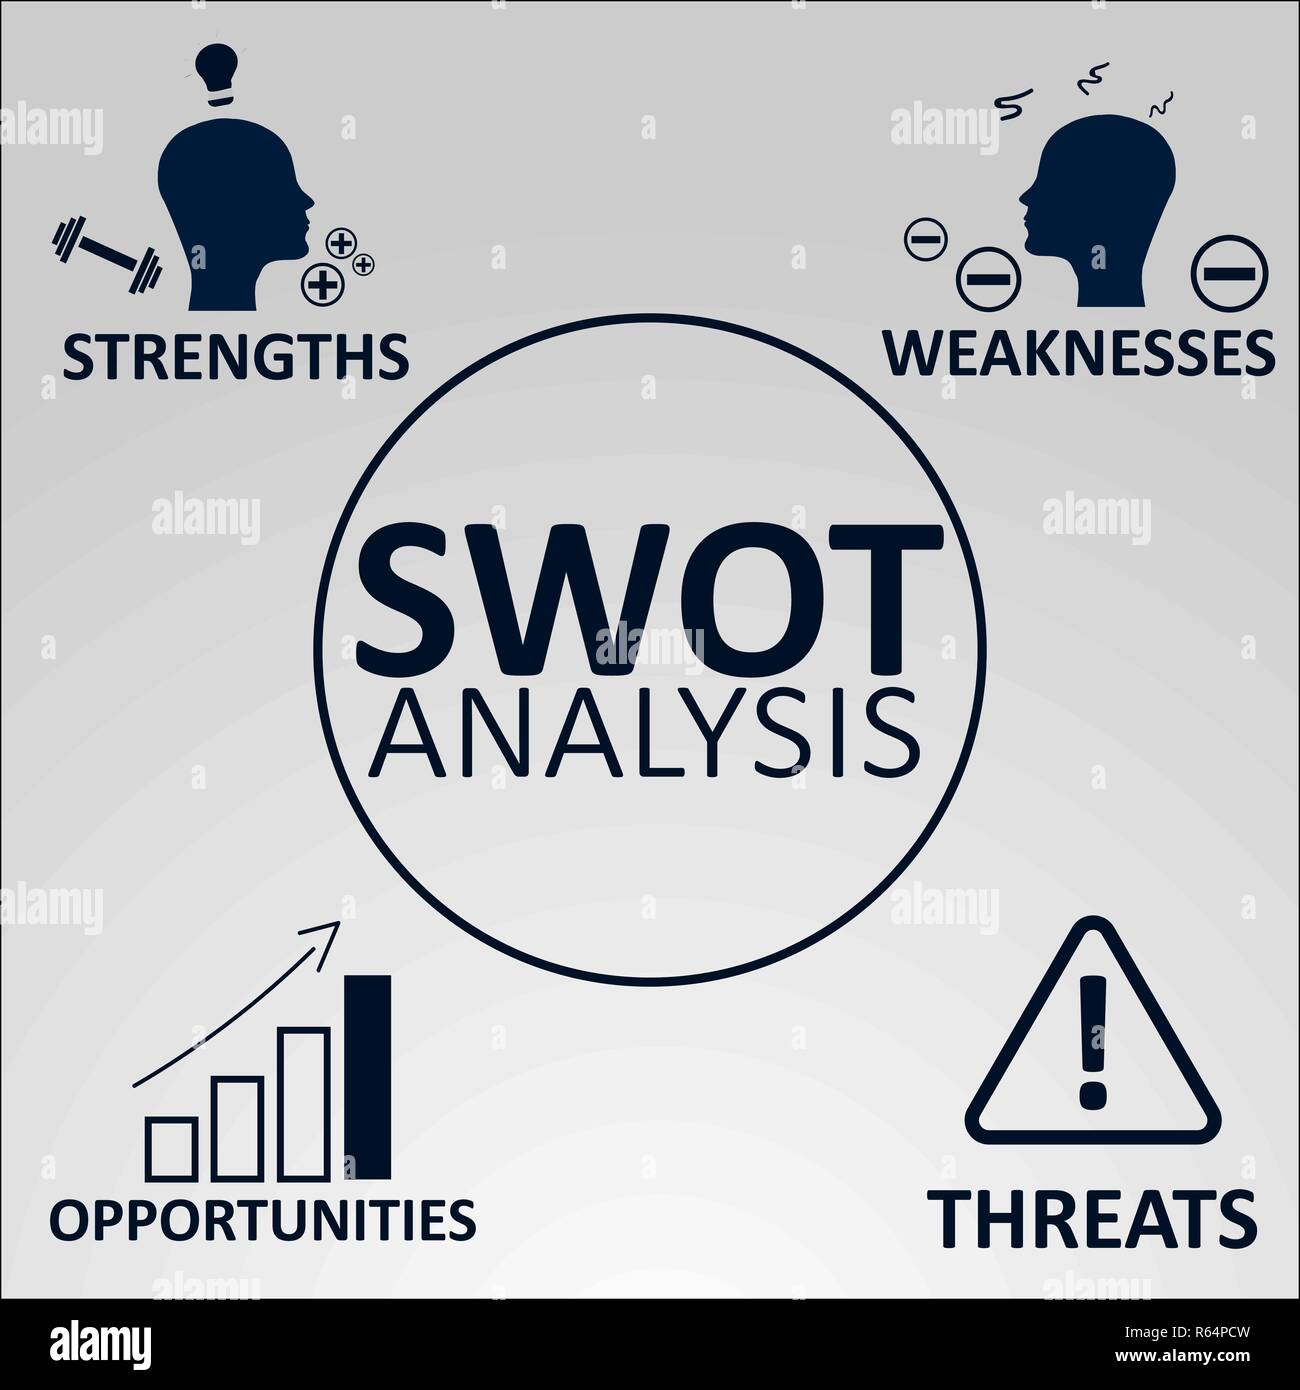 swot analysis concept strengths weaknesses opportunities and threats of the company vector illustration with icons and text stock vector image art alamy https www alamy com swot analysis concept strengths weaknesses opportunities and threats of the company vector illustration with icons and text image227528137 html